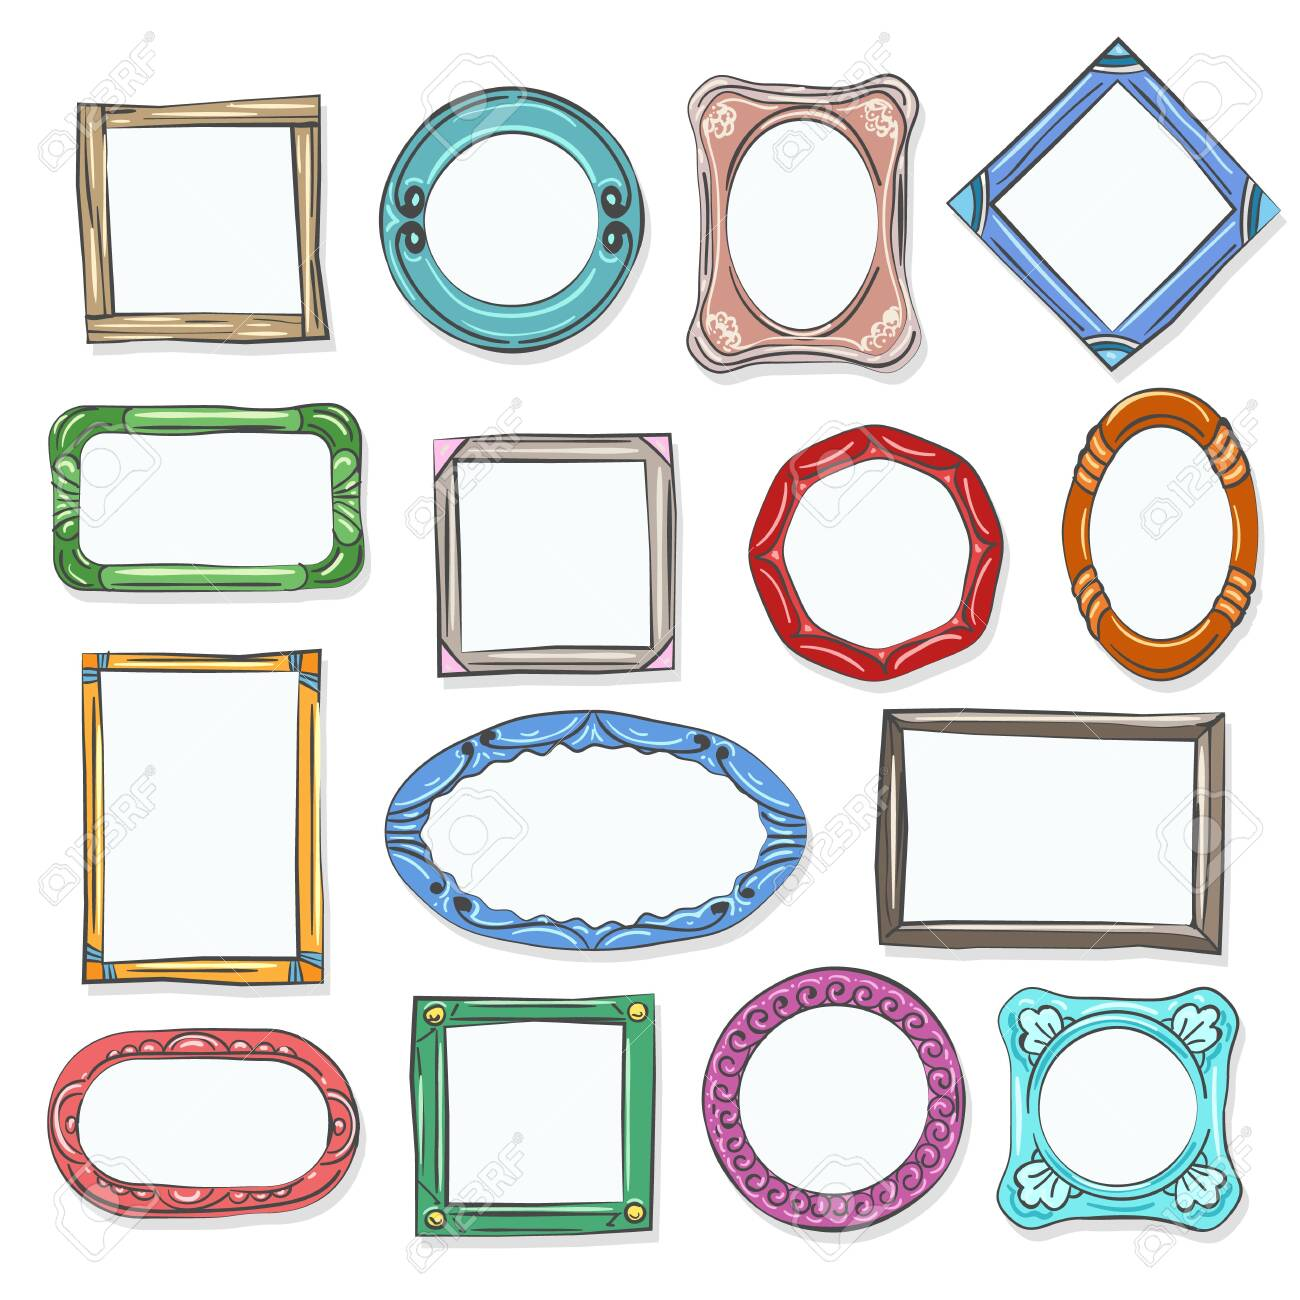 Circle cartoon photo shapes. Decorative doodle picture frames, hand drawn round cartoon photo pictures for scrapbook, vector illustration - 123639319